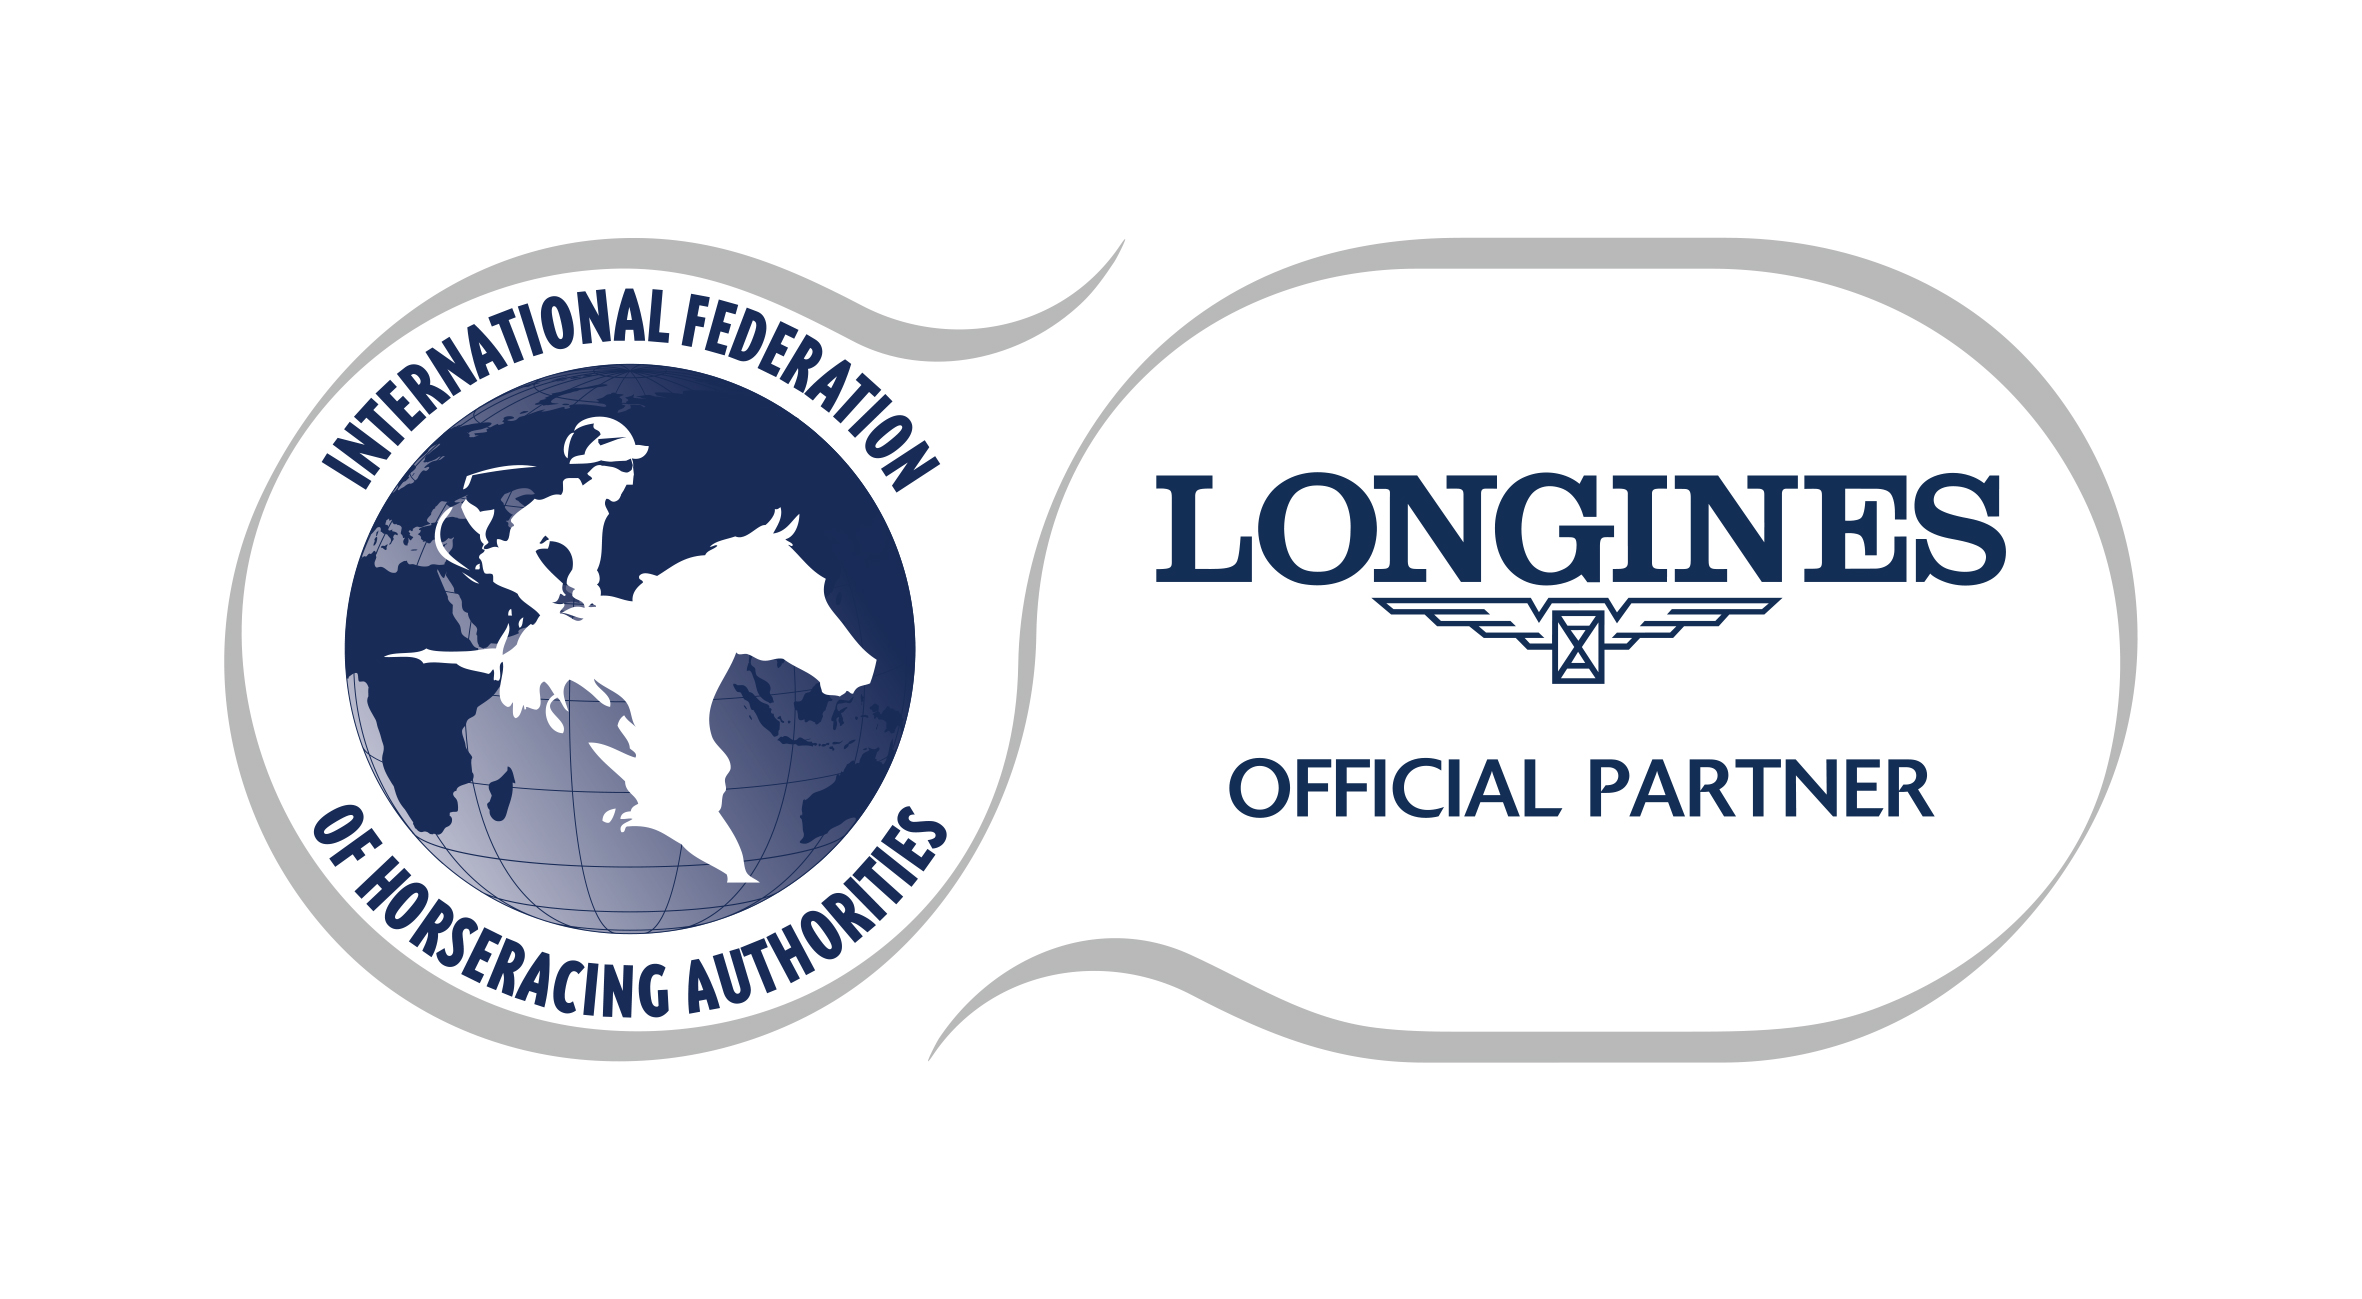 A Partnership Is Signed Between The International Federation Of Horseracing Authorities And Longines